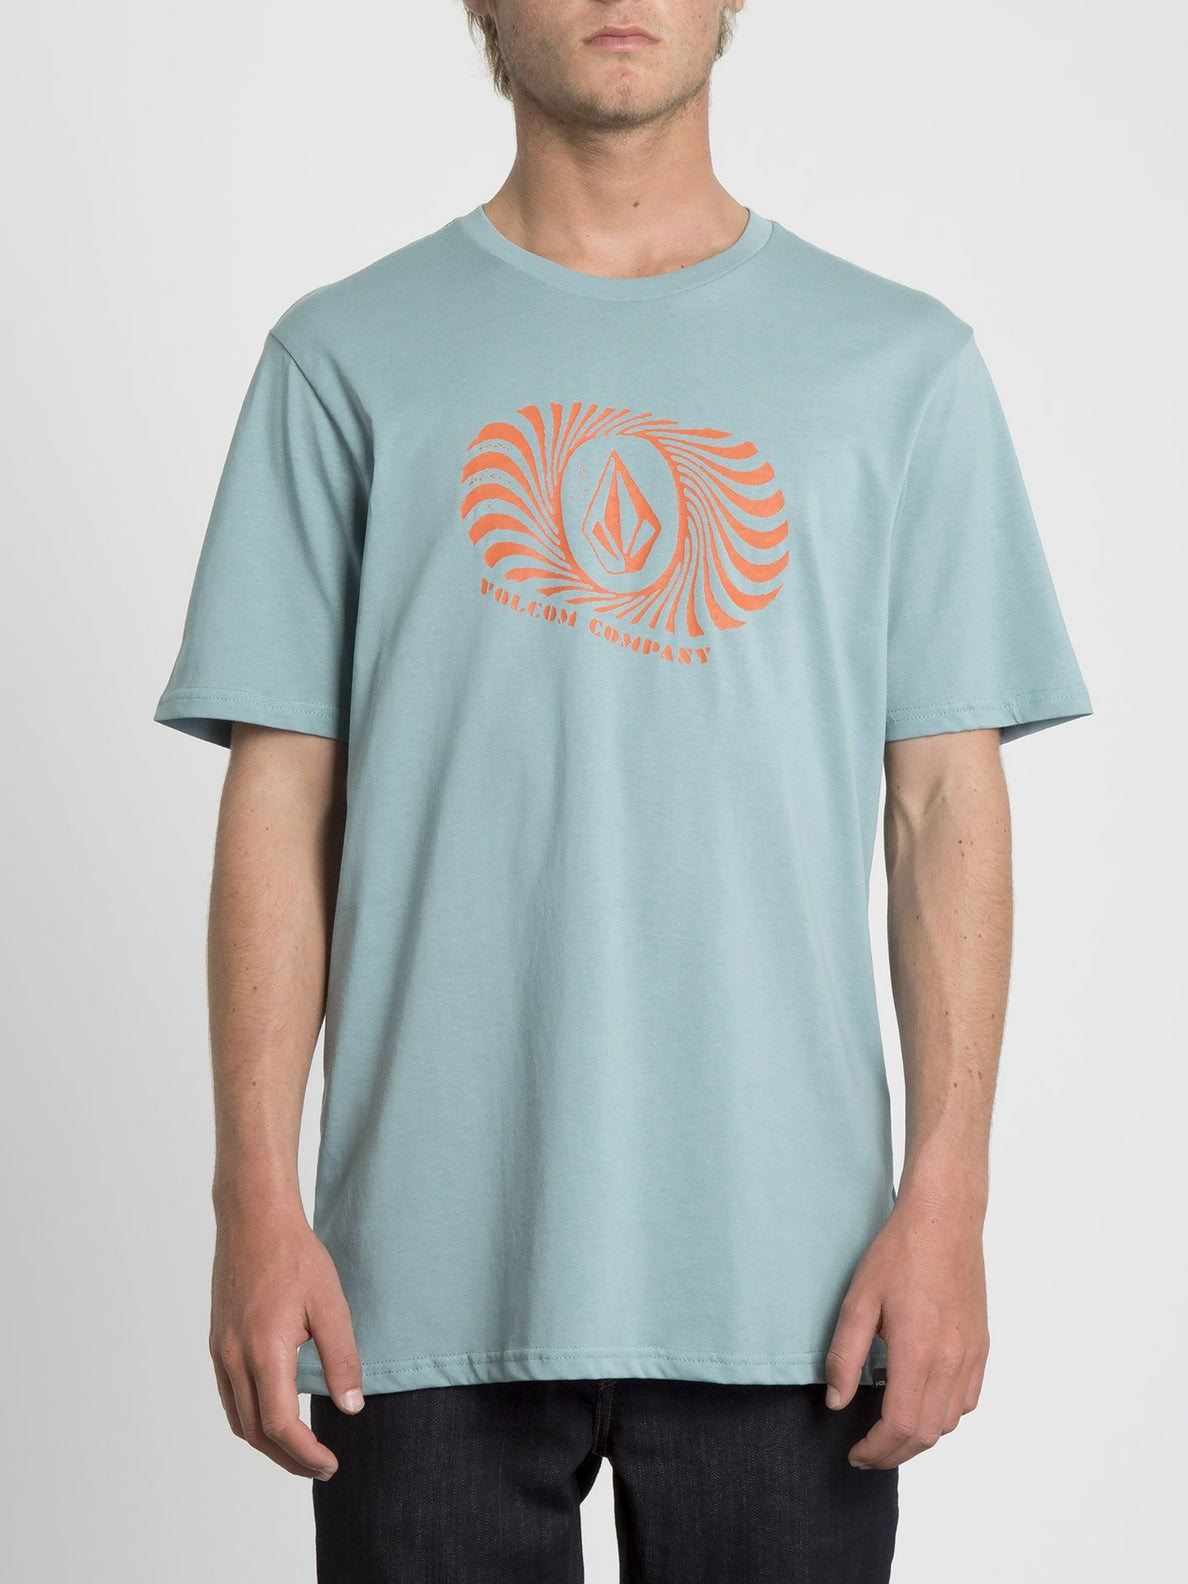 Digit Fty T Shirt Agave